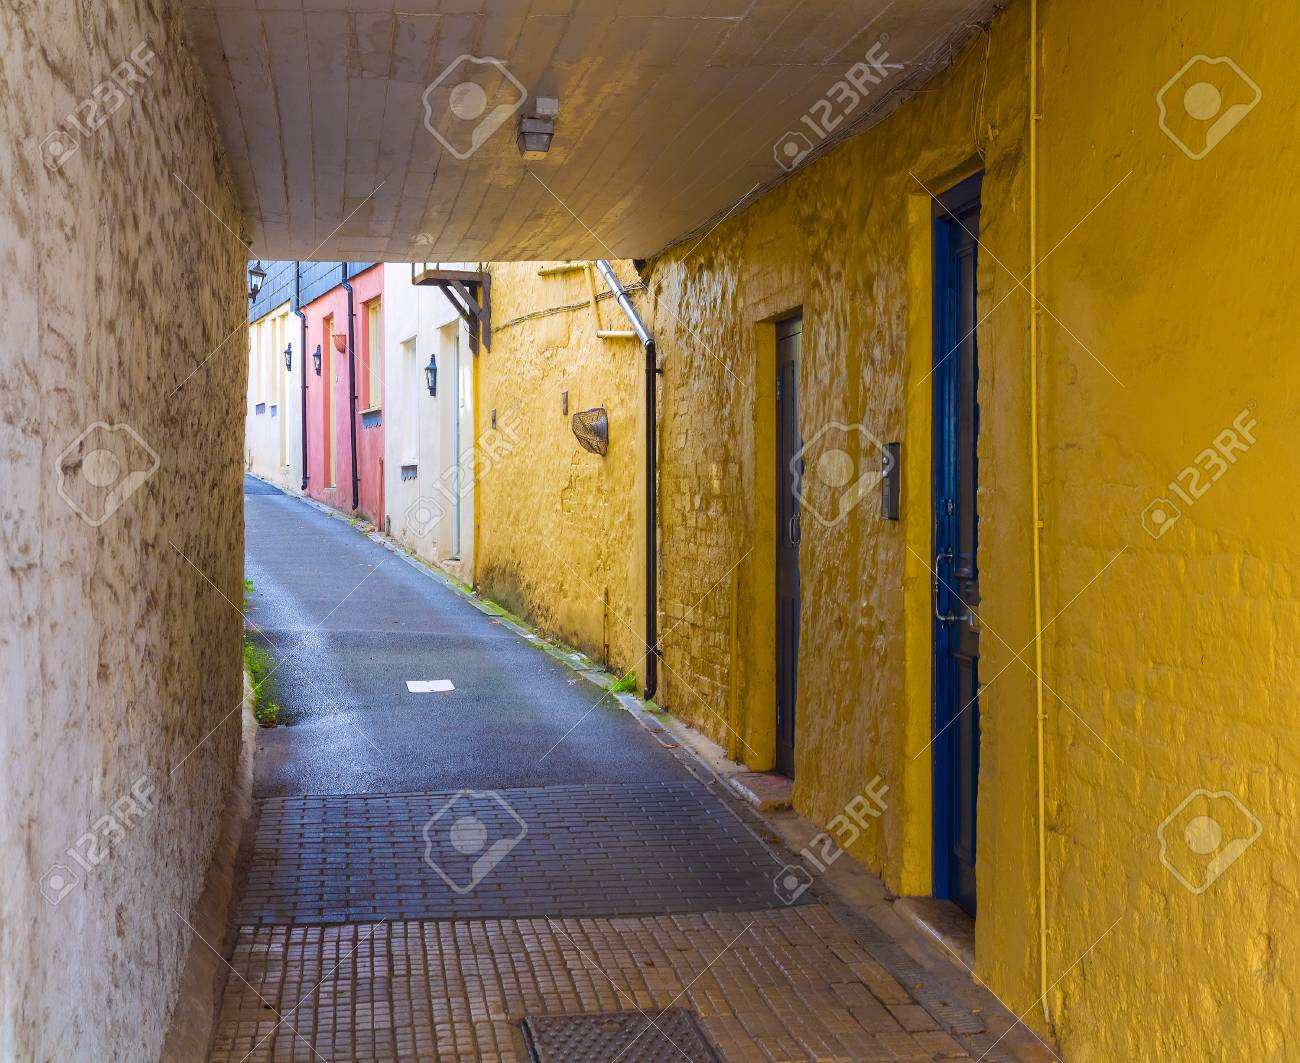 A Small Street With A Tunnel Bright Yellow And Red And White